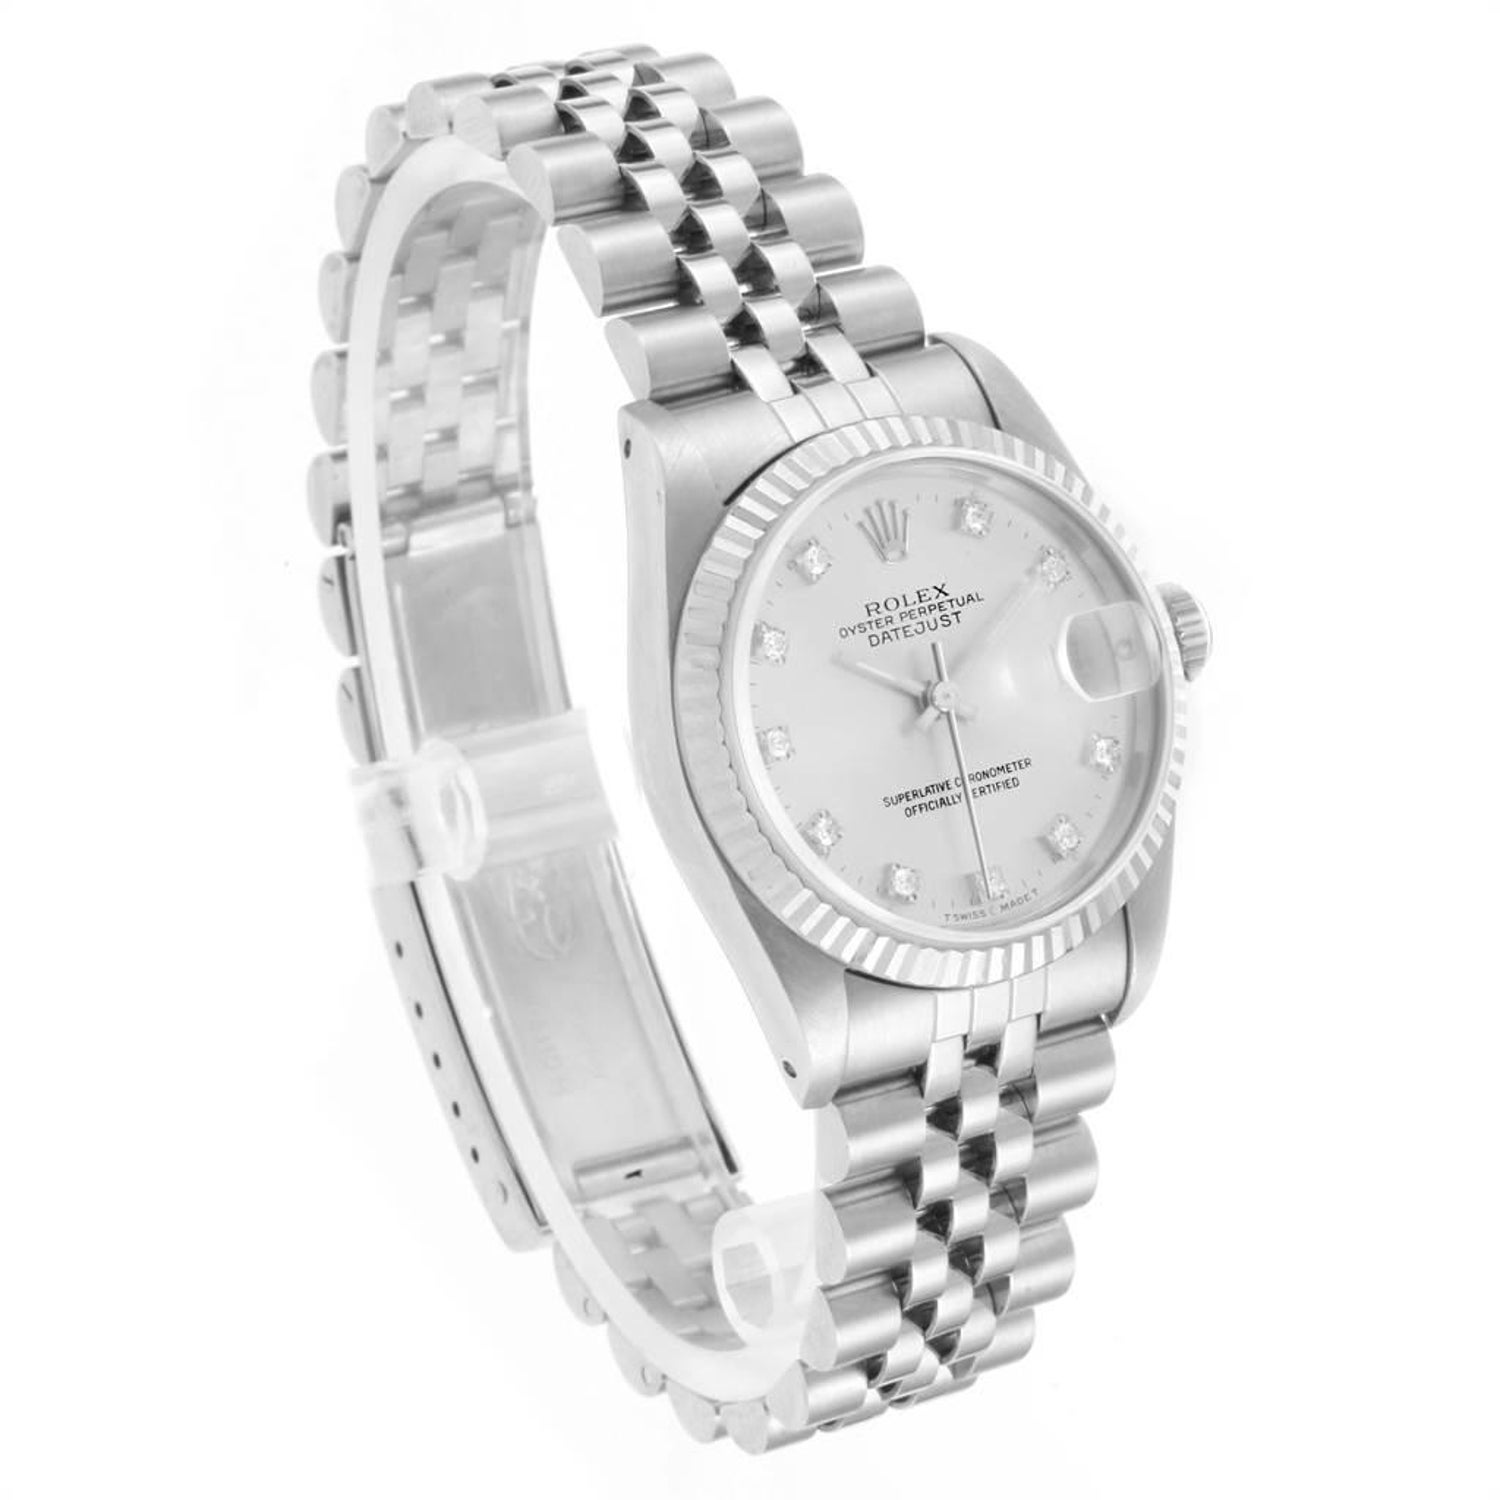 936f05f40ea Rolex Datejust Midsize 31 Steel White Gold Diamond Ladies Watch 68274 For  Sale at 1stdibs